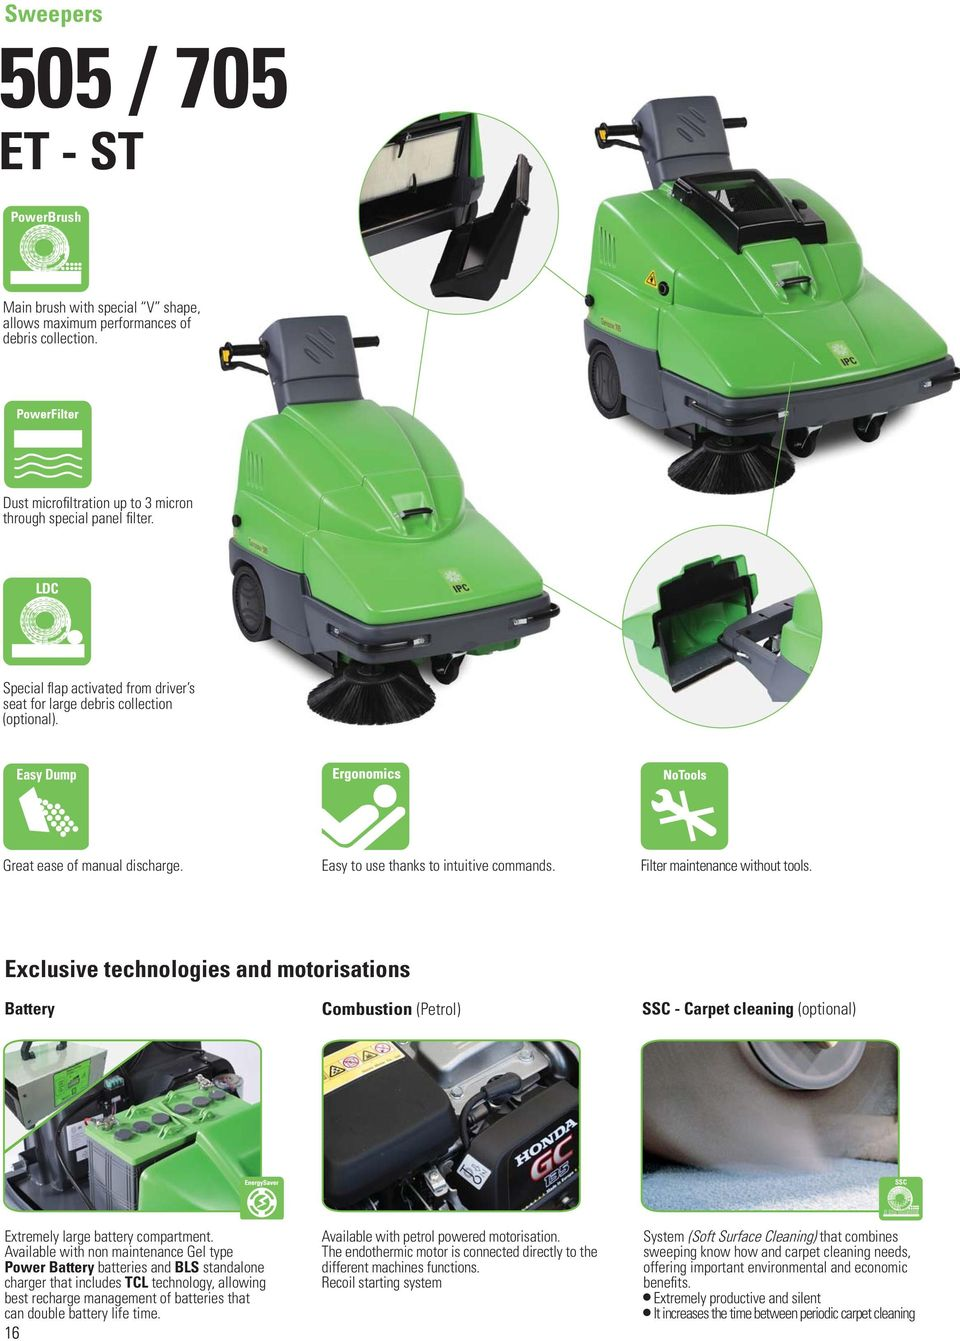 Filter maintenance without tools. Exclusive technologies and motorisations Battery Combustion (Petrol) - Carpet cleaning (optional) Extremely large battery compartment.